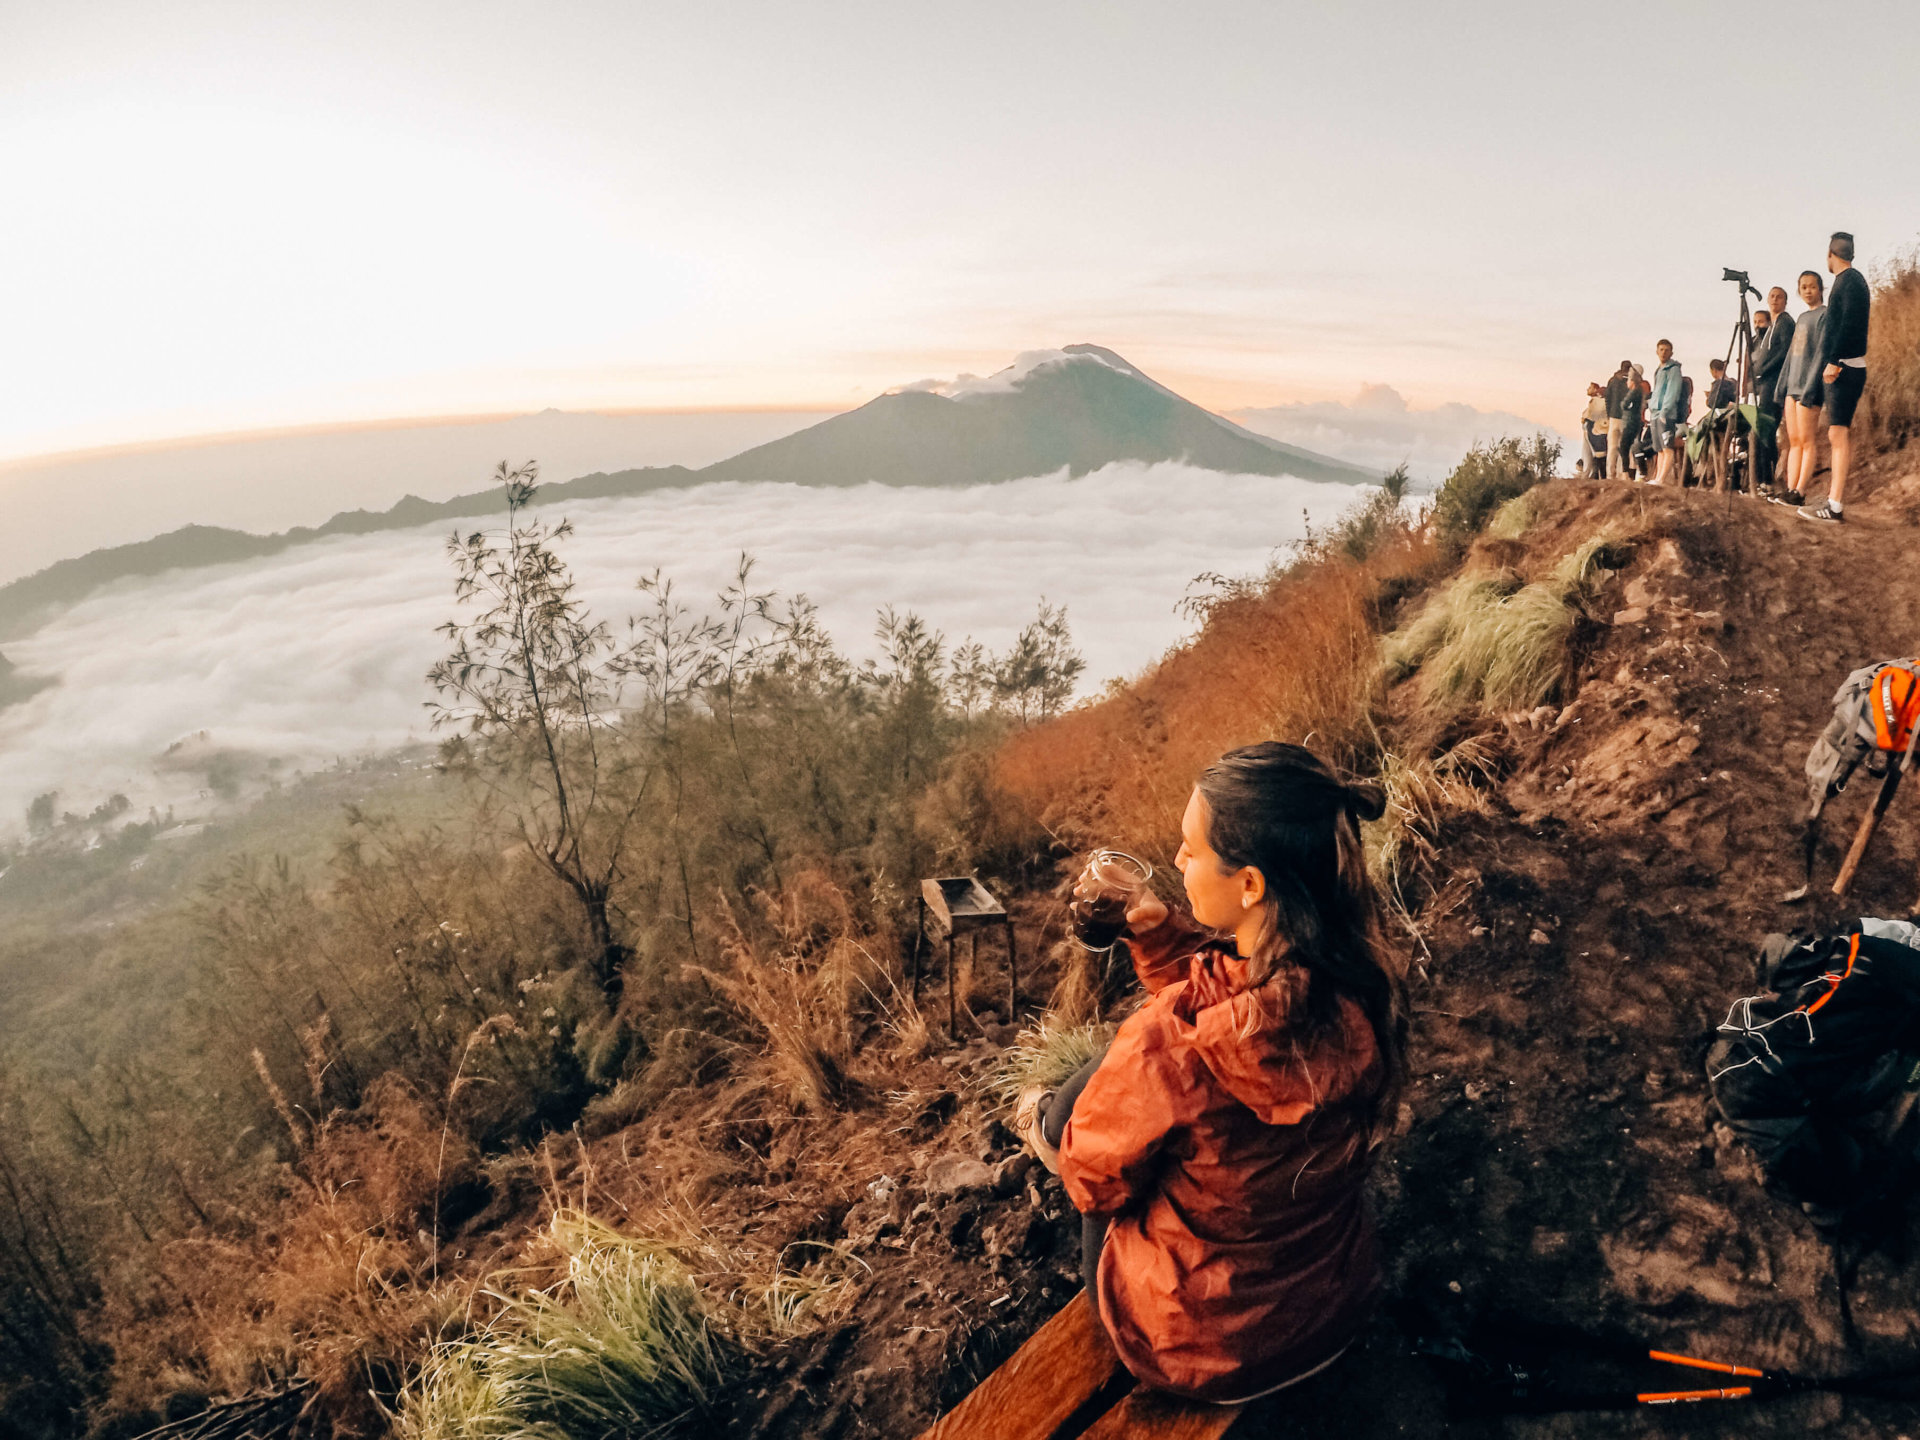 Double Occupancy overlooking Mount Batur during sunrise